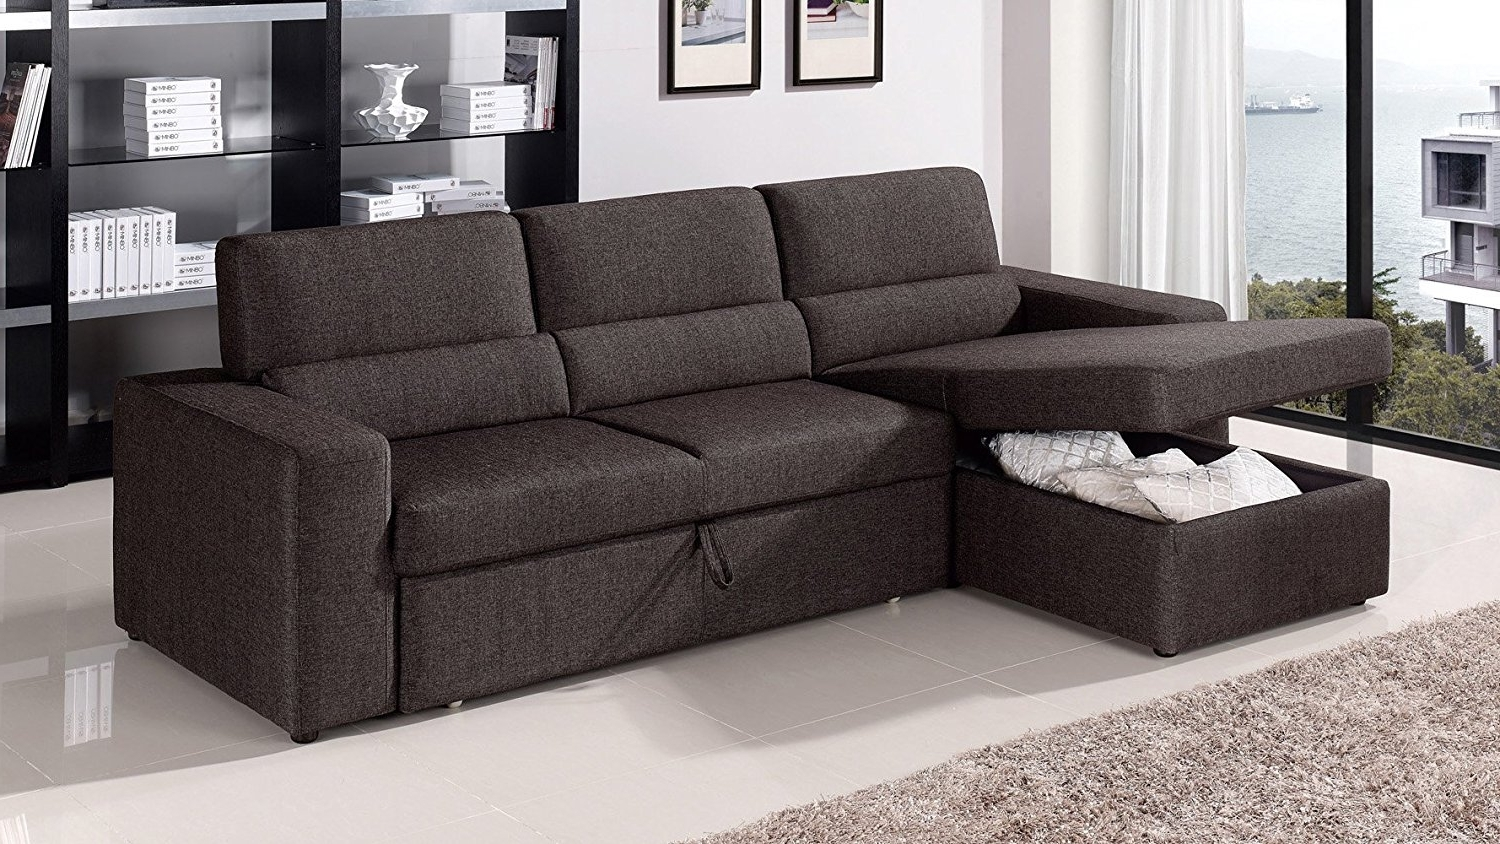 Sofa Bed Chaises Throughout Recent Amazon: Black/brown Clubber Sleeper Sectional Sofa – Left (View 9 of 15)